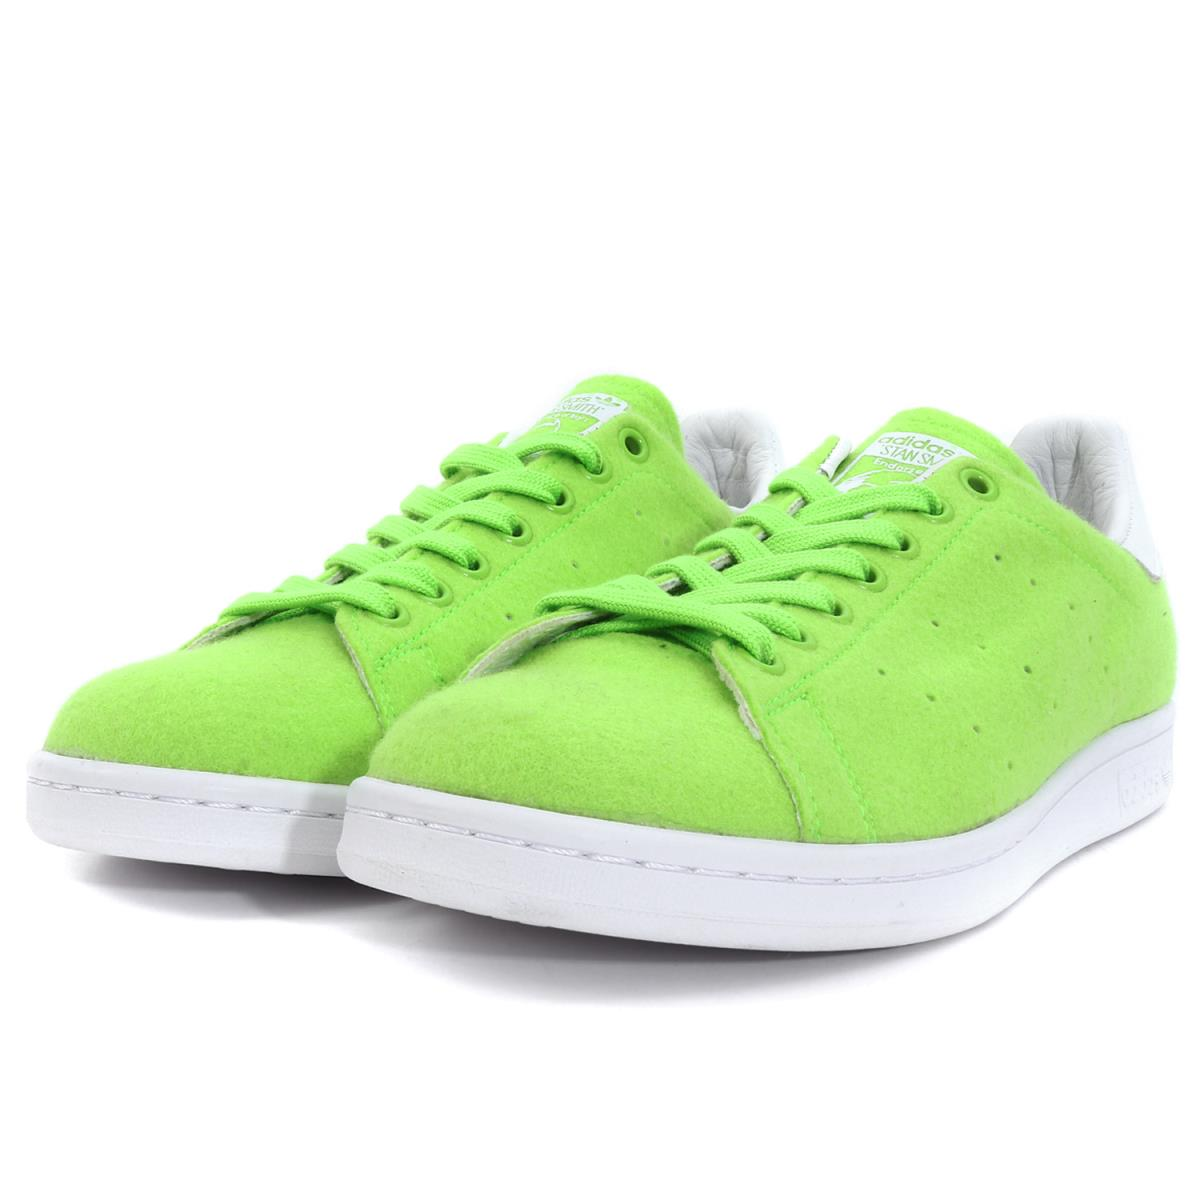 4ae157d22a16e6 adidas (Adidas) X PHARRELL WILLIAMS PW STAN SMITH TNS TENNIS PACK II  (B25388) green US10(28cm)